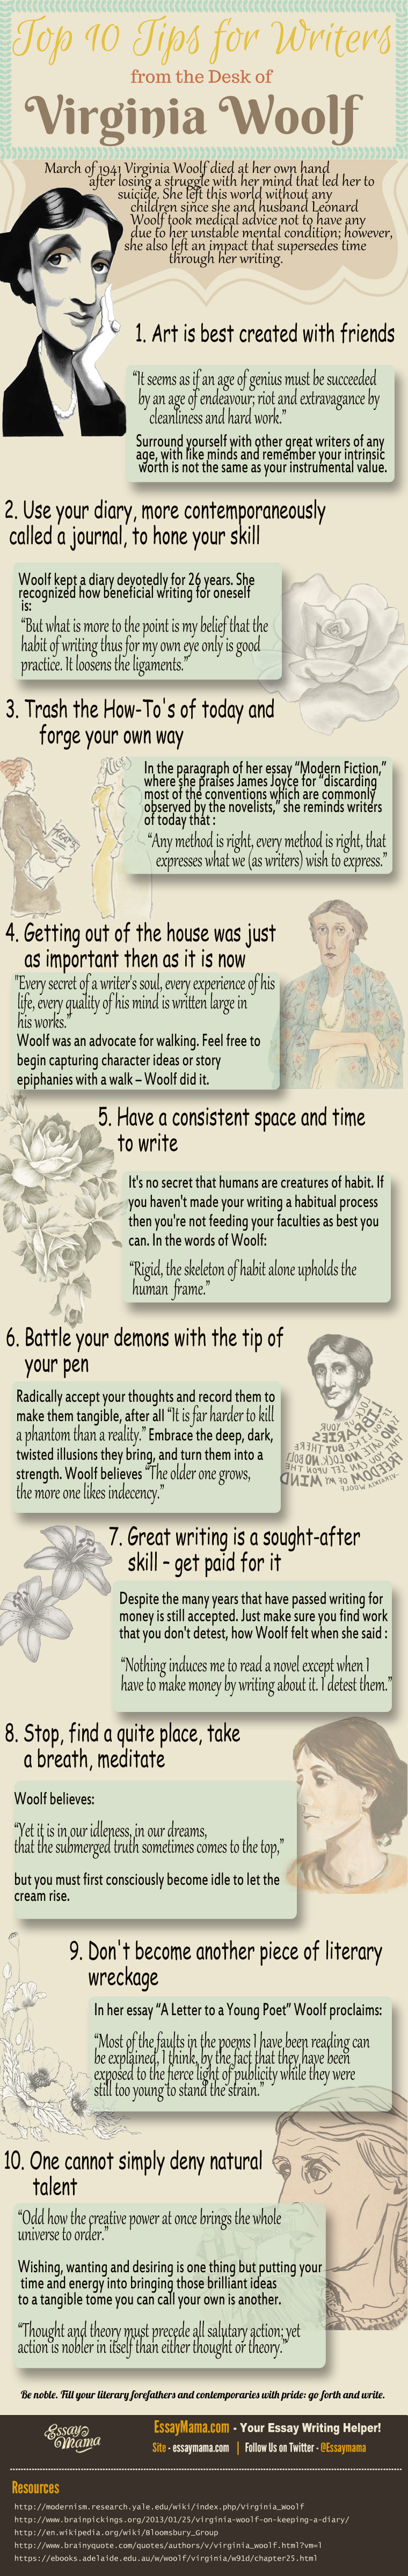 Infographic: Top 10 Writing Tips from the Desk of Virginia Woolf